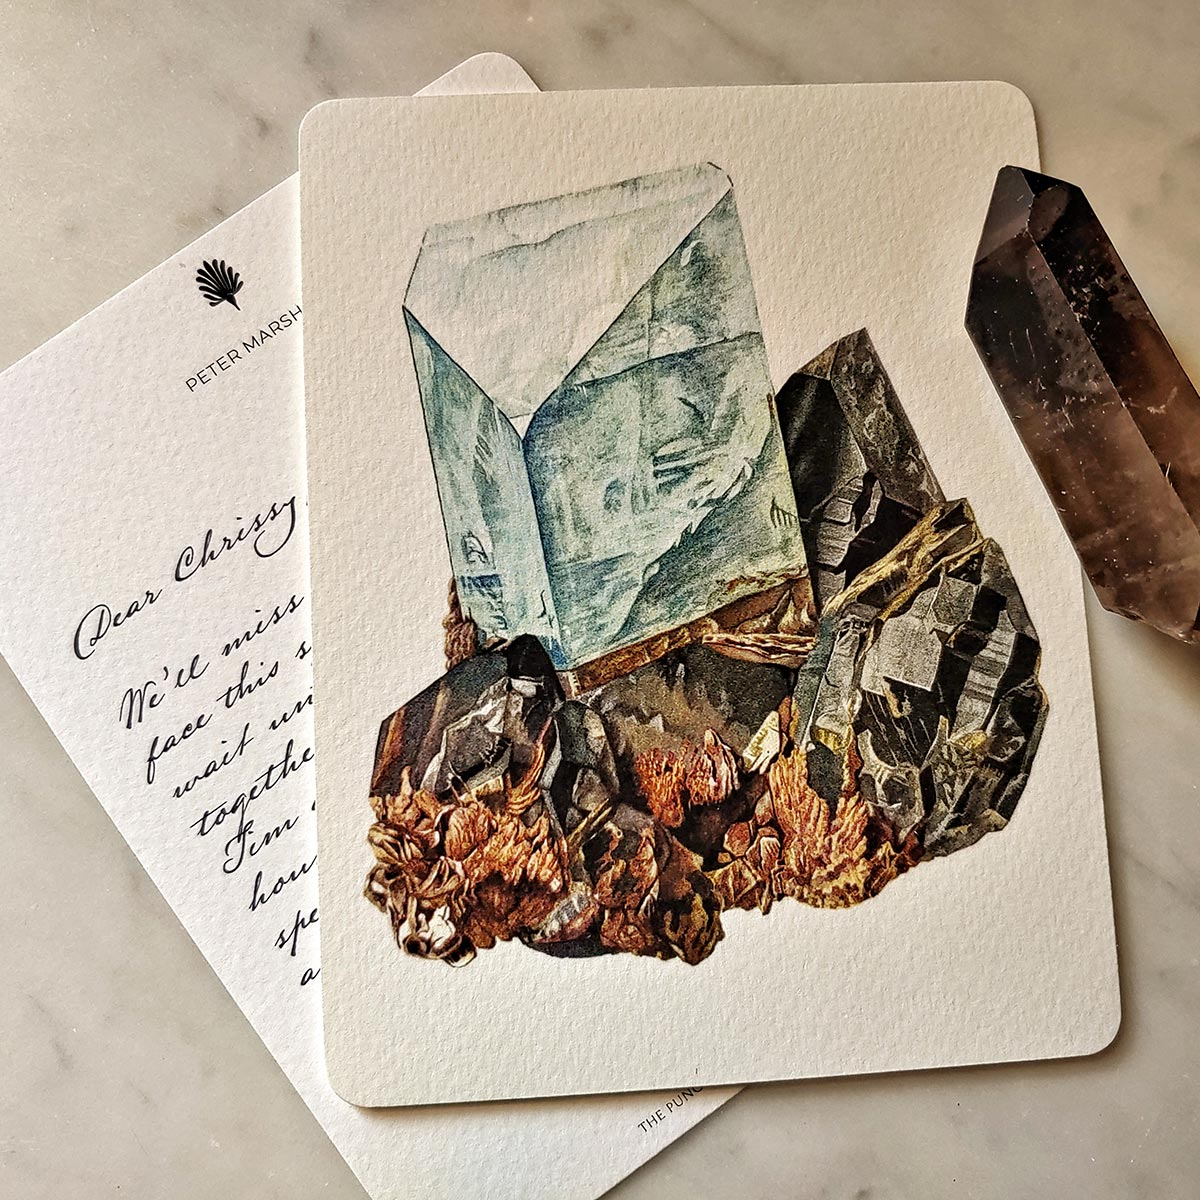 The Punctilious Mr. P's 'Minerals No. 4' fine note card on marble ledge with crystals on top showing the back of the card with digital calligraphy note